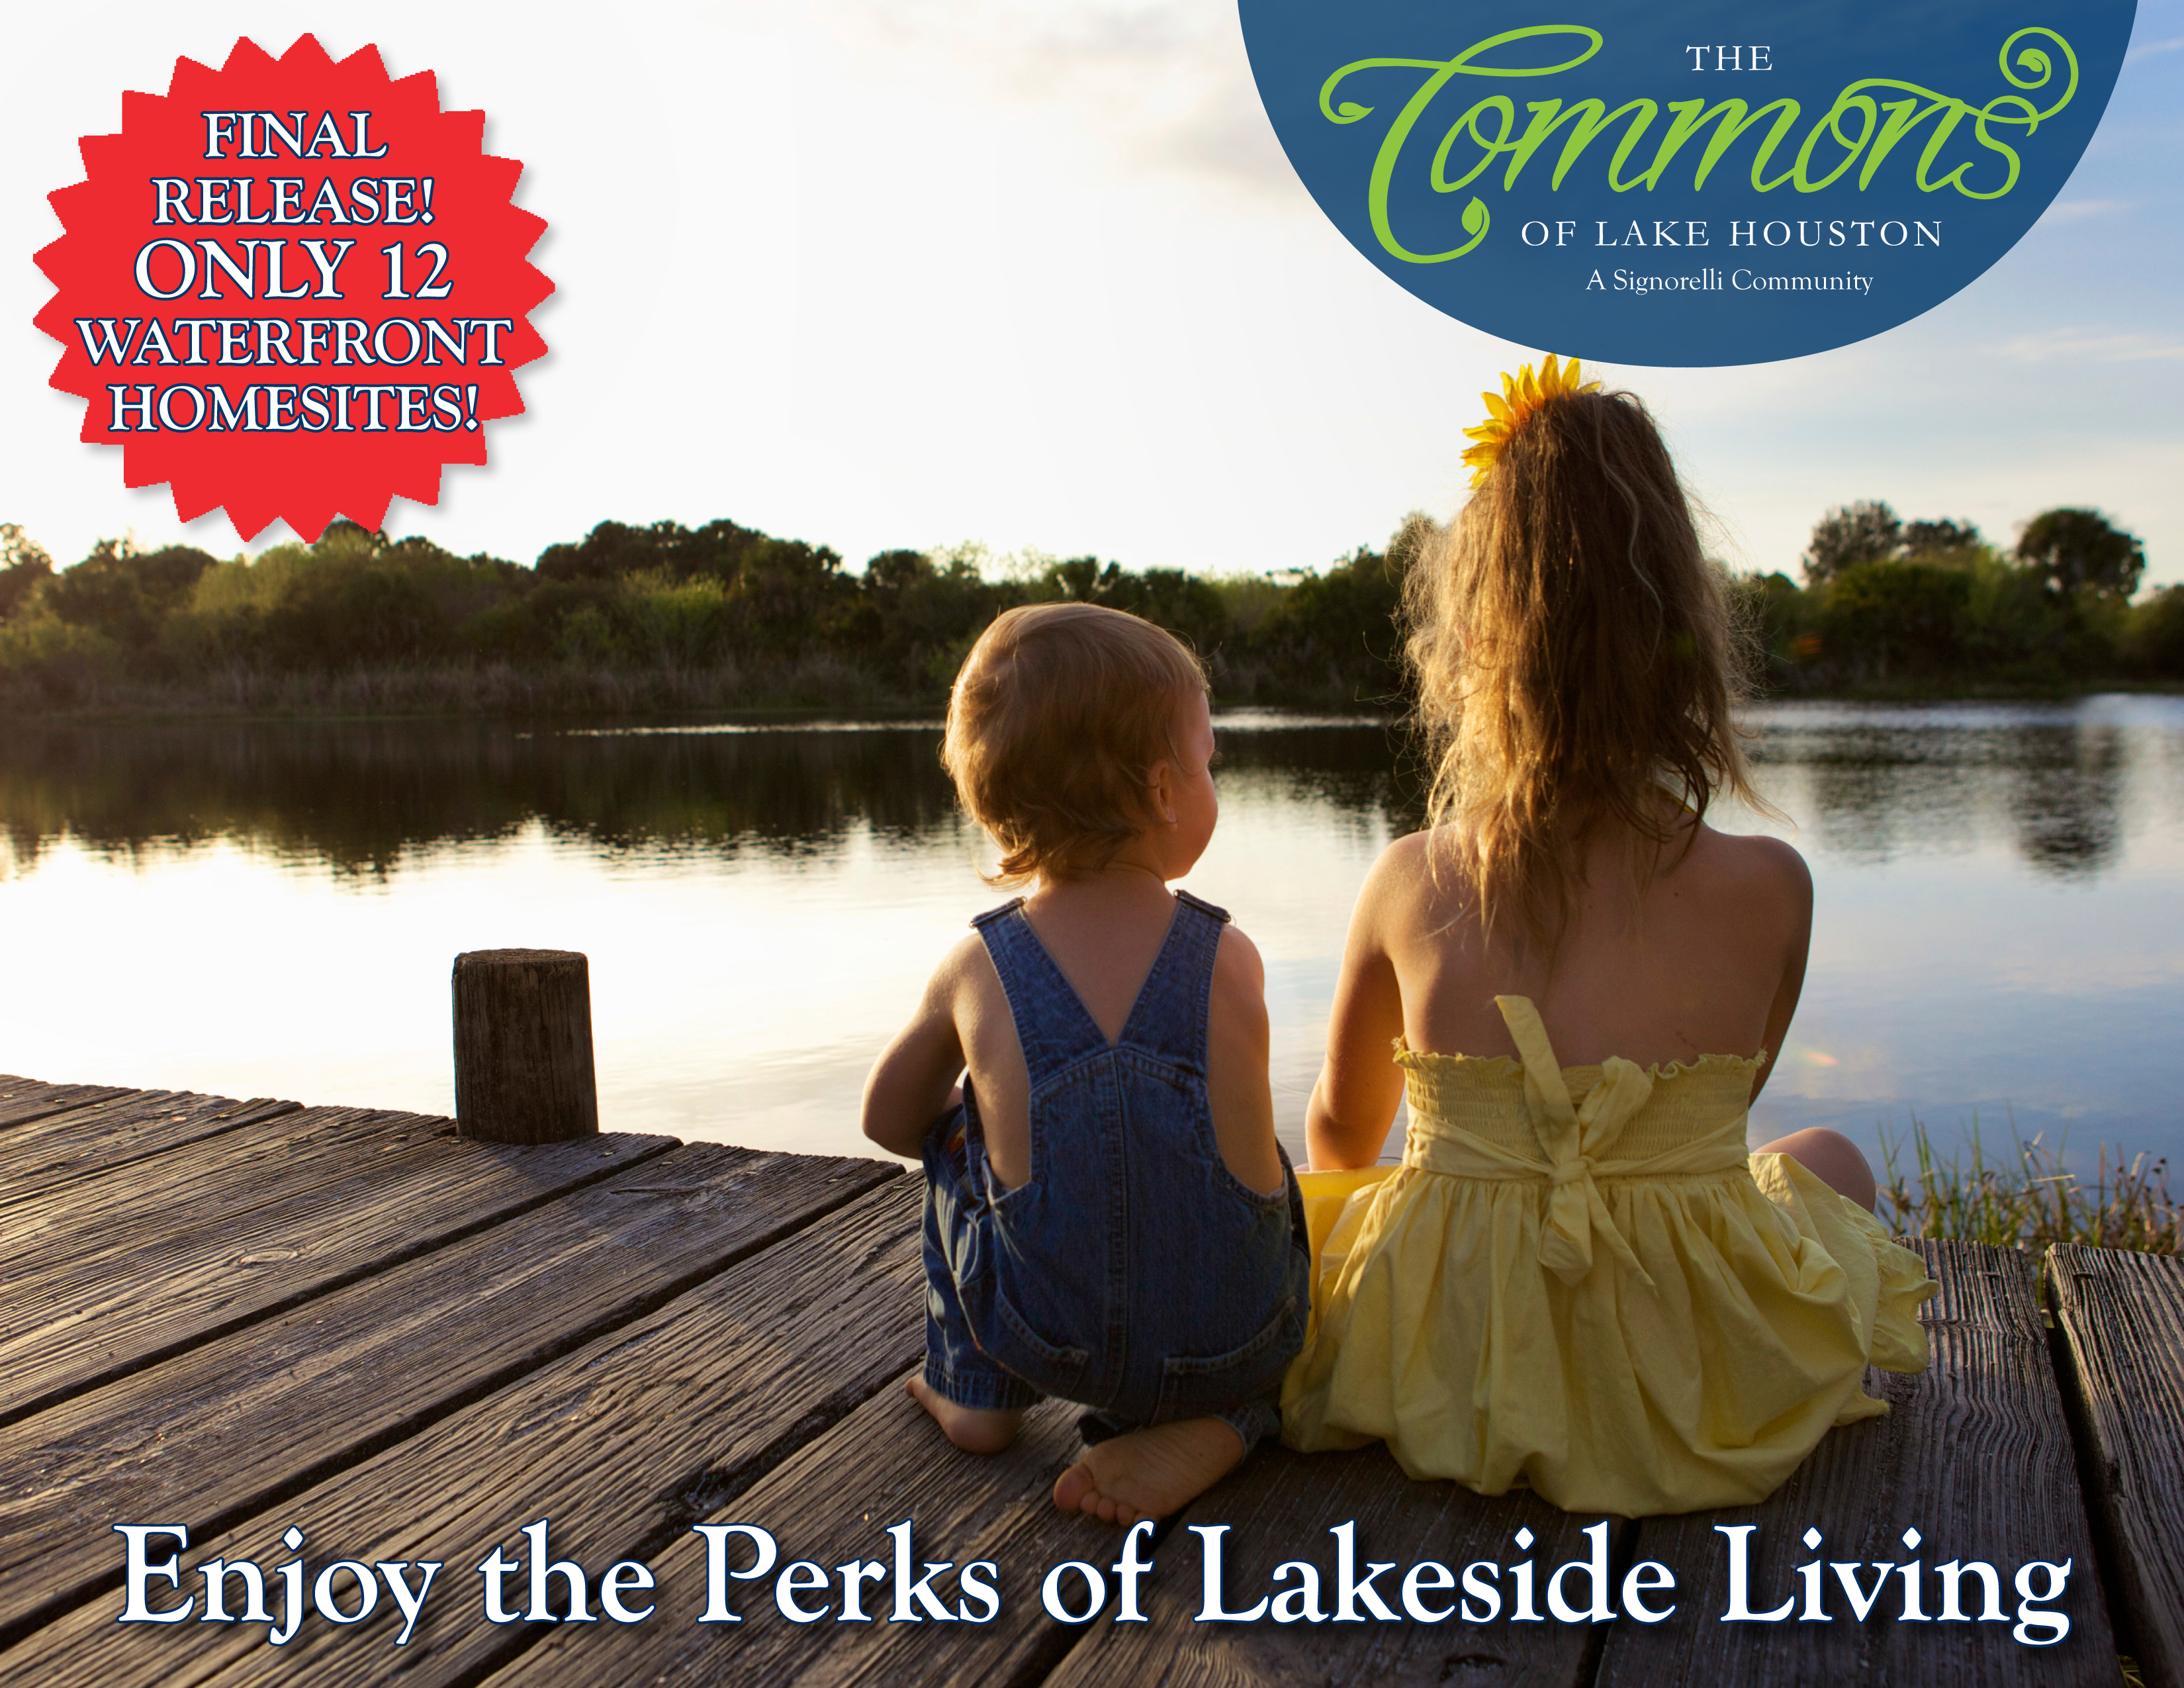 The Commons of Lake Houston Waterfront Final Release